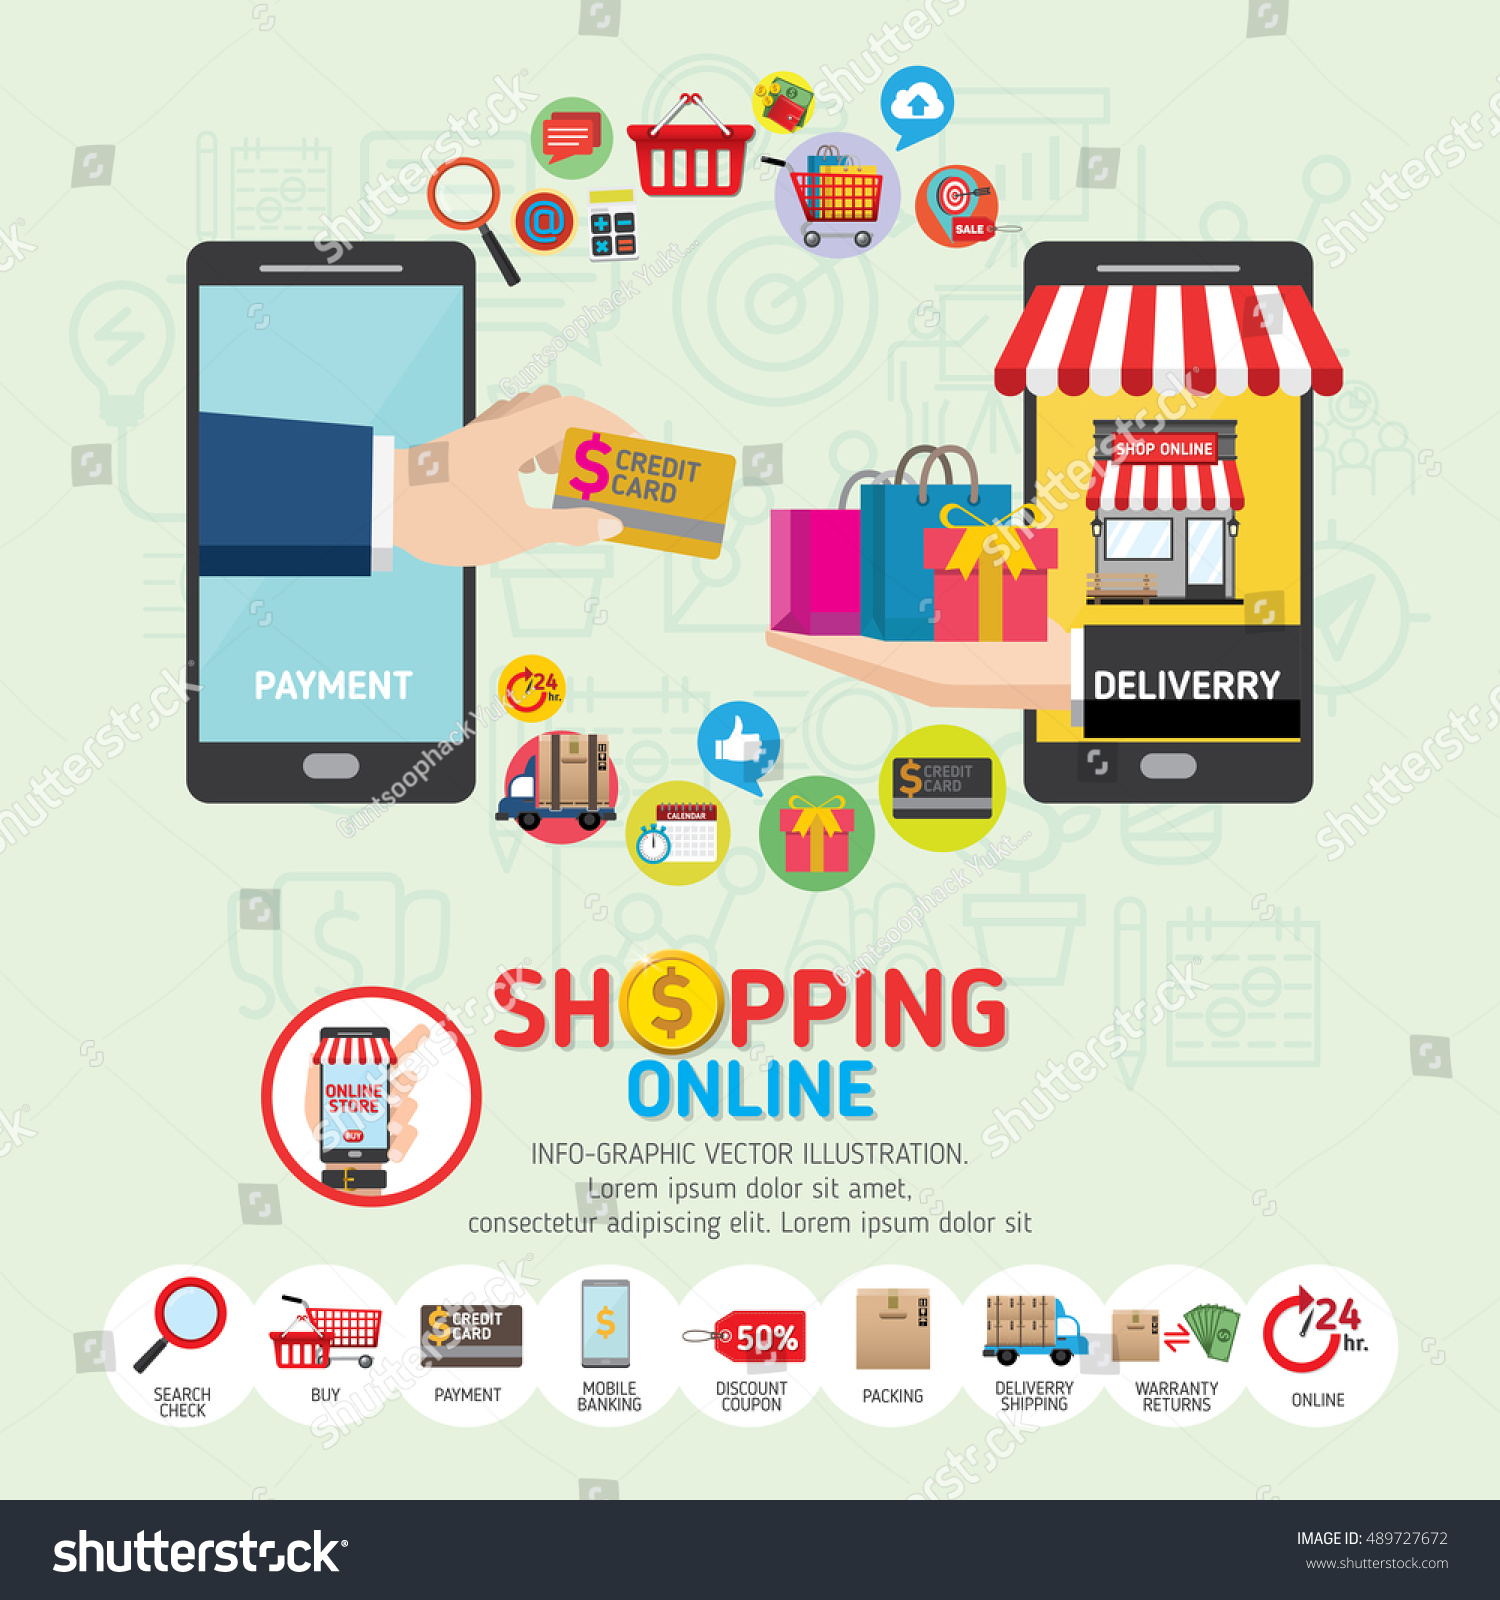 Online shopping concept mobile payments vector stock for Shopping mobili online